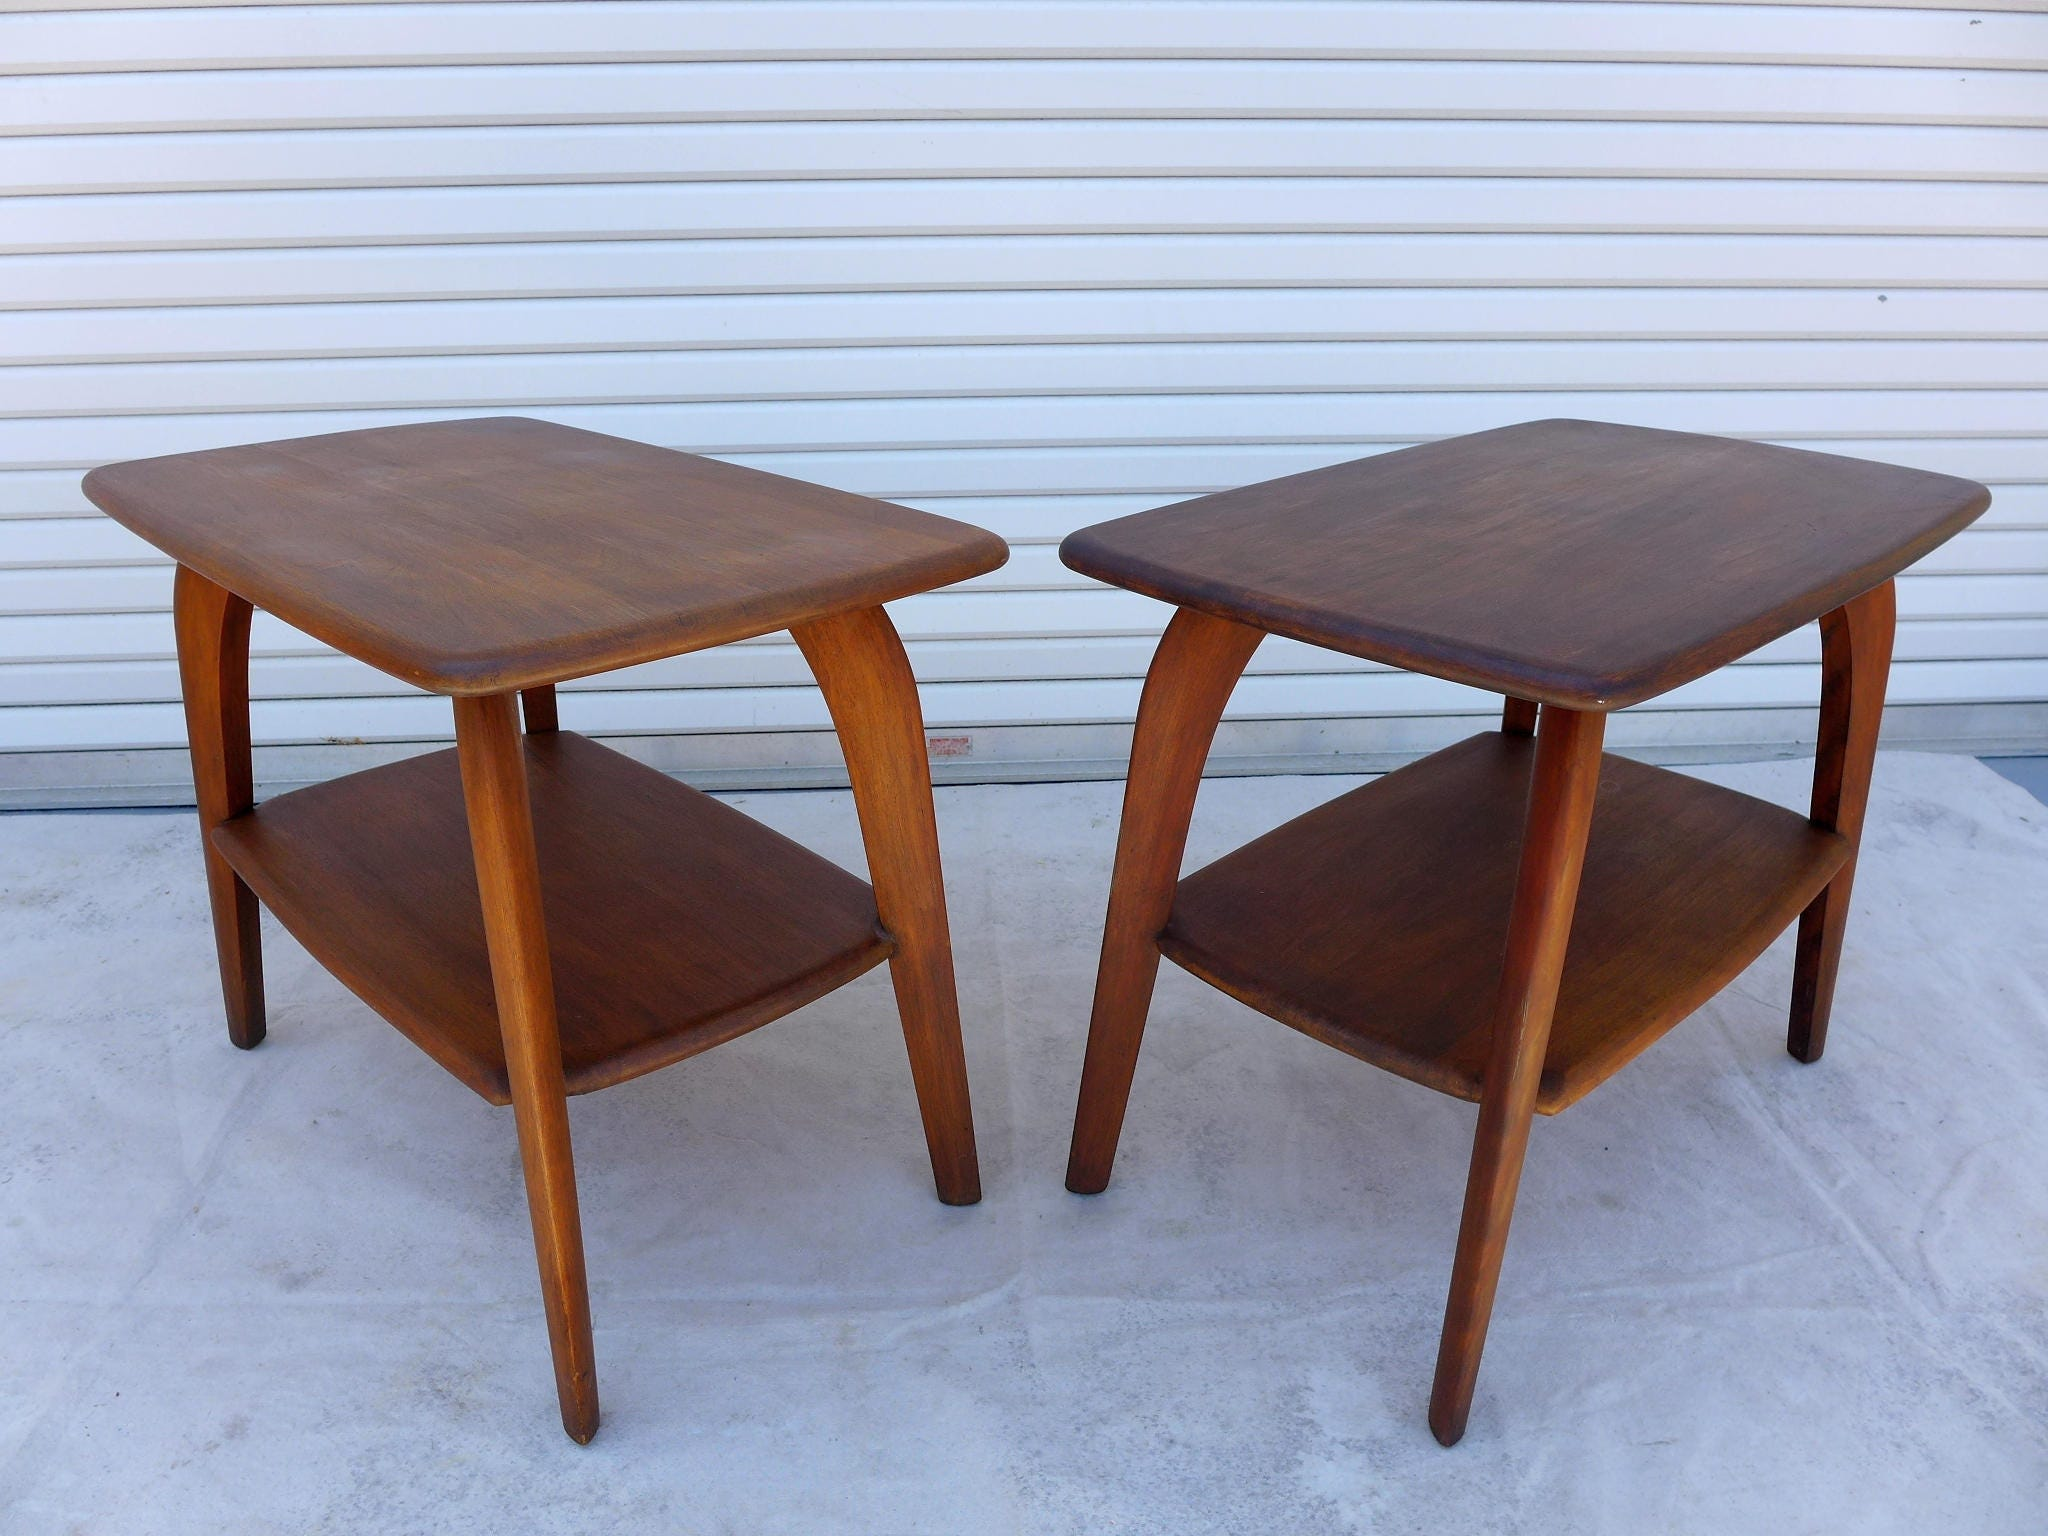 Pair of Heywood Wakefield End Tables Two Tier Saber Leg Side